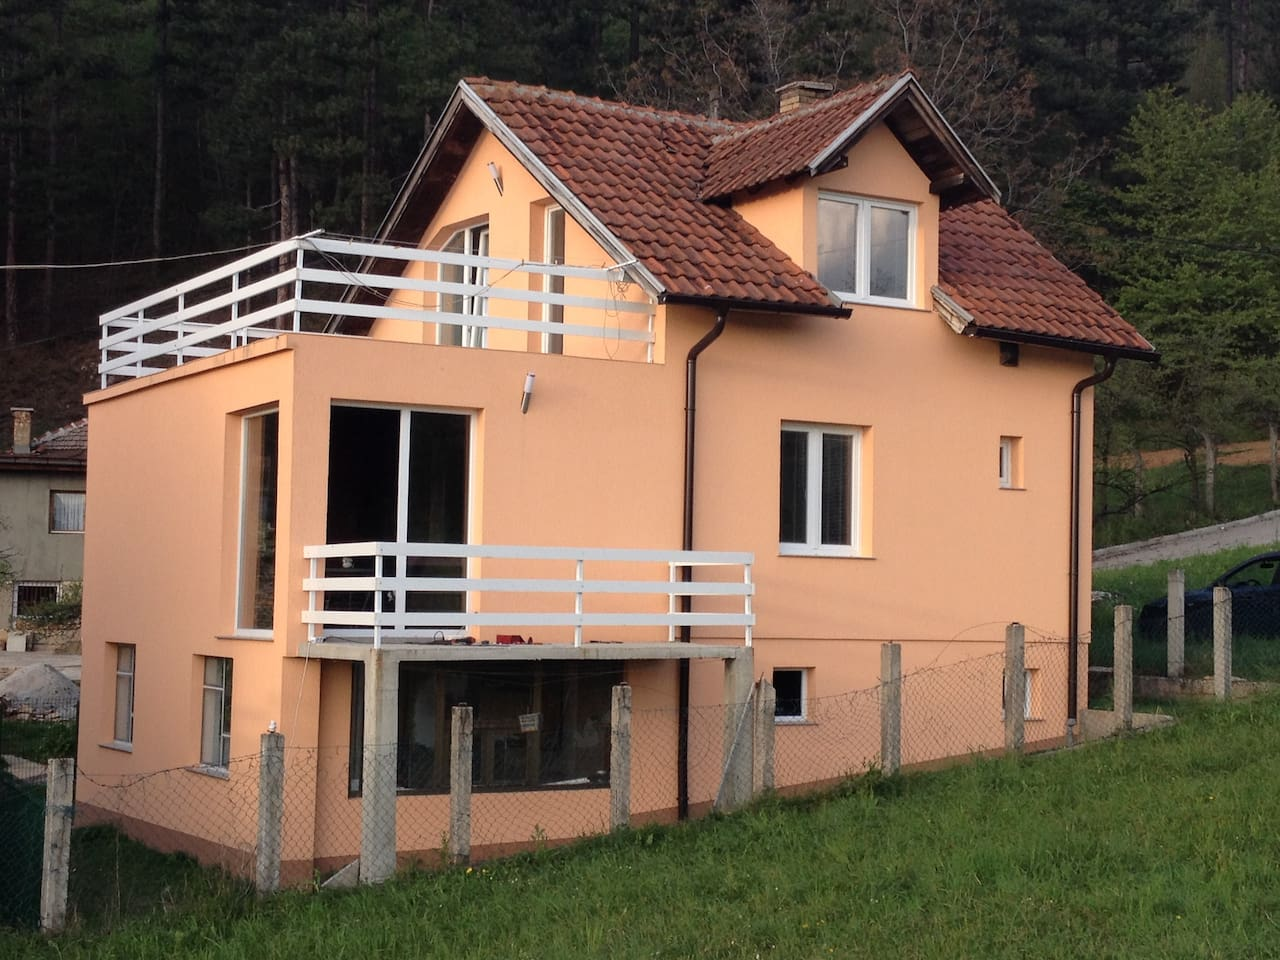 House (100 m2) consisting of three rooms, living room, kitchen, bathroom, balcony, terrace (25 m2) and two garages